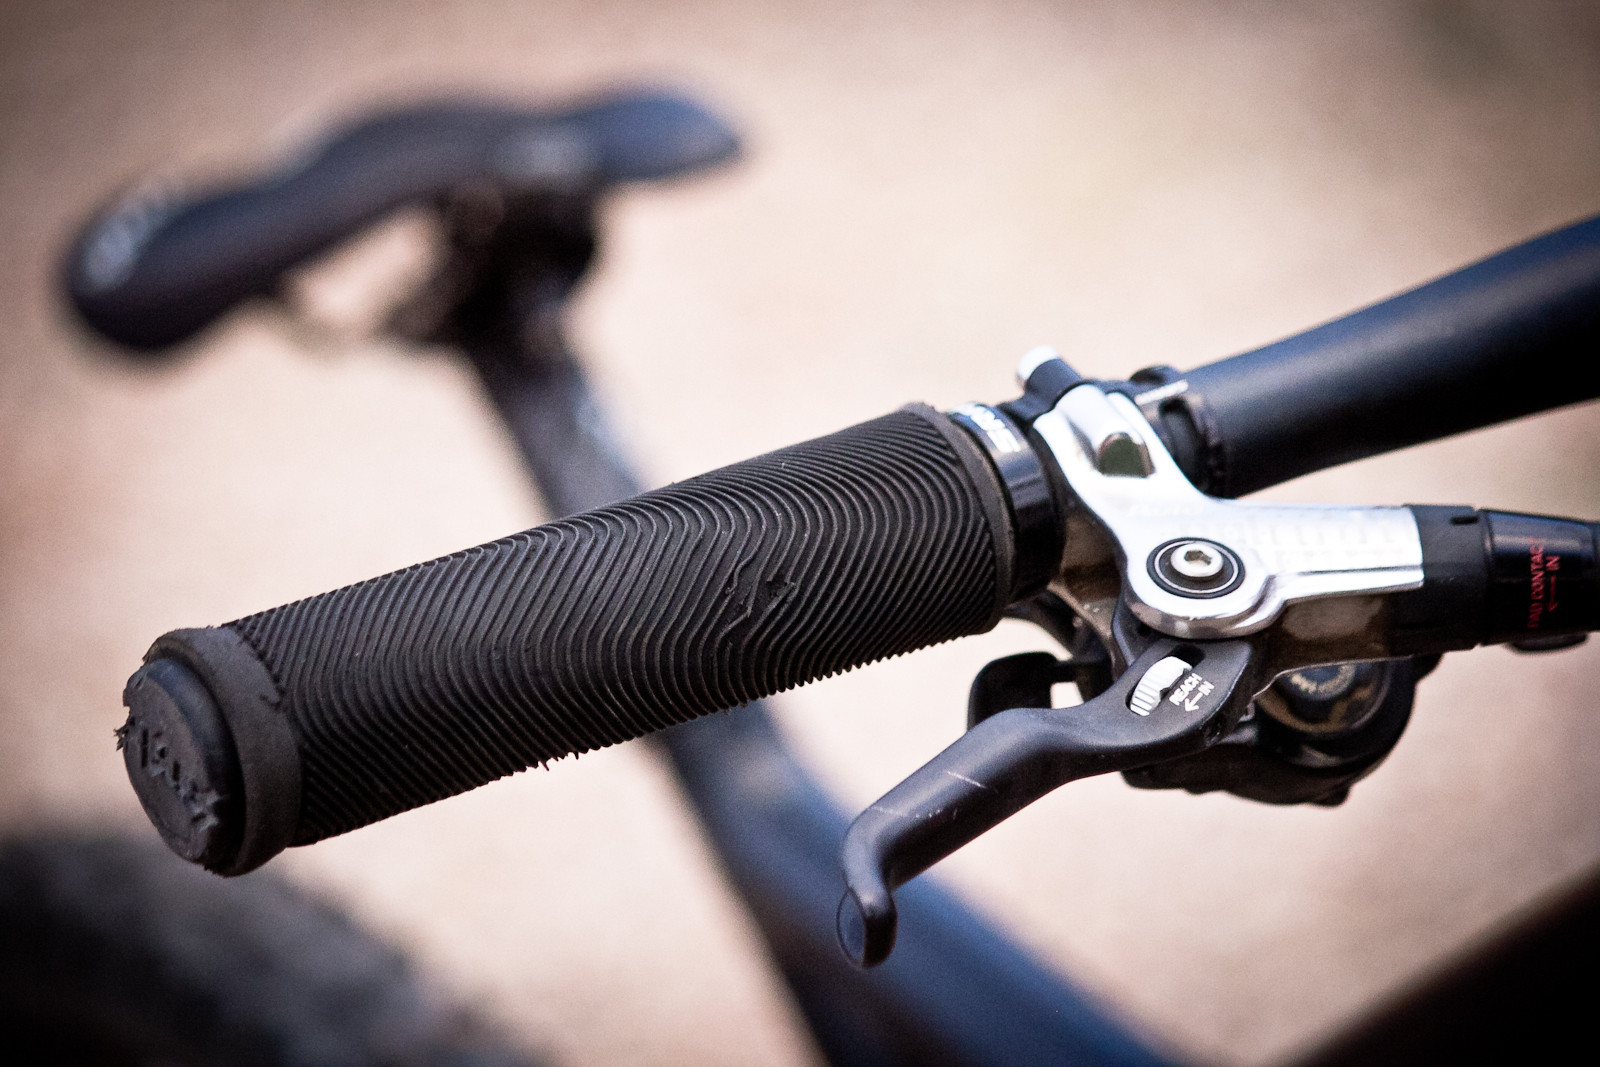 Kyle Strait's Sensus Swayze Grips with Custom Sleeve  - Rampage Pro Bike: Kyle Strait's GT Fury - Mountain Biking Pictures - Vital MTB